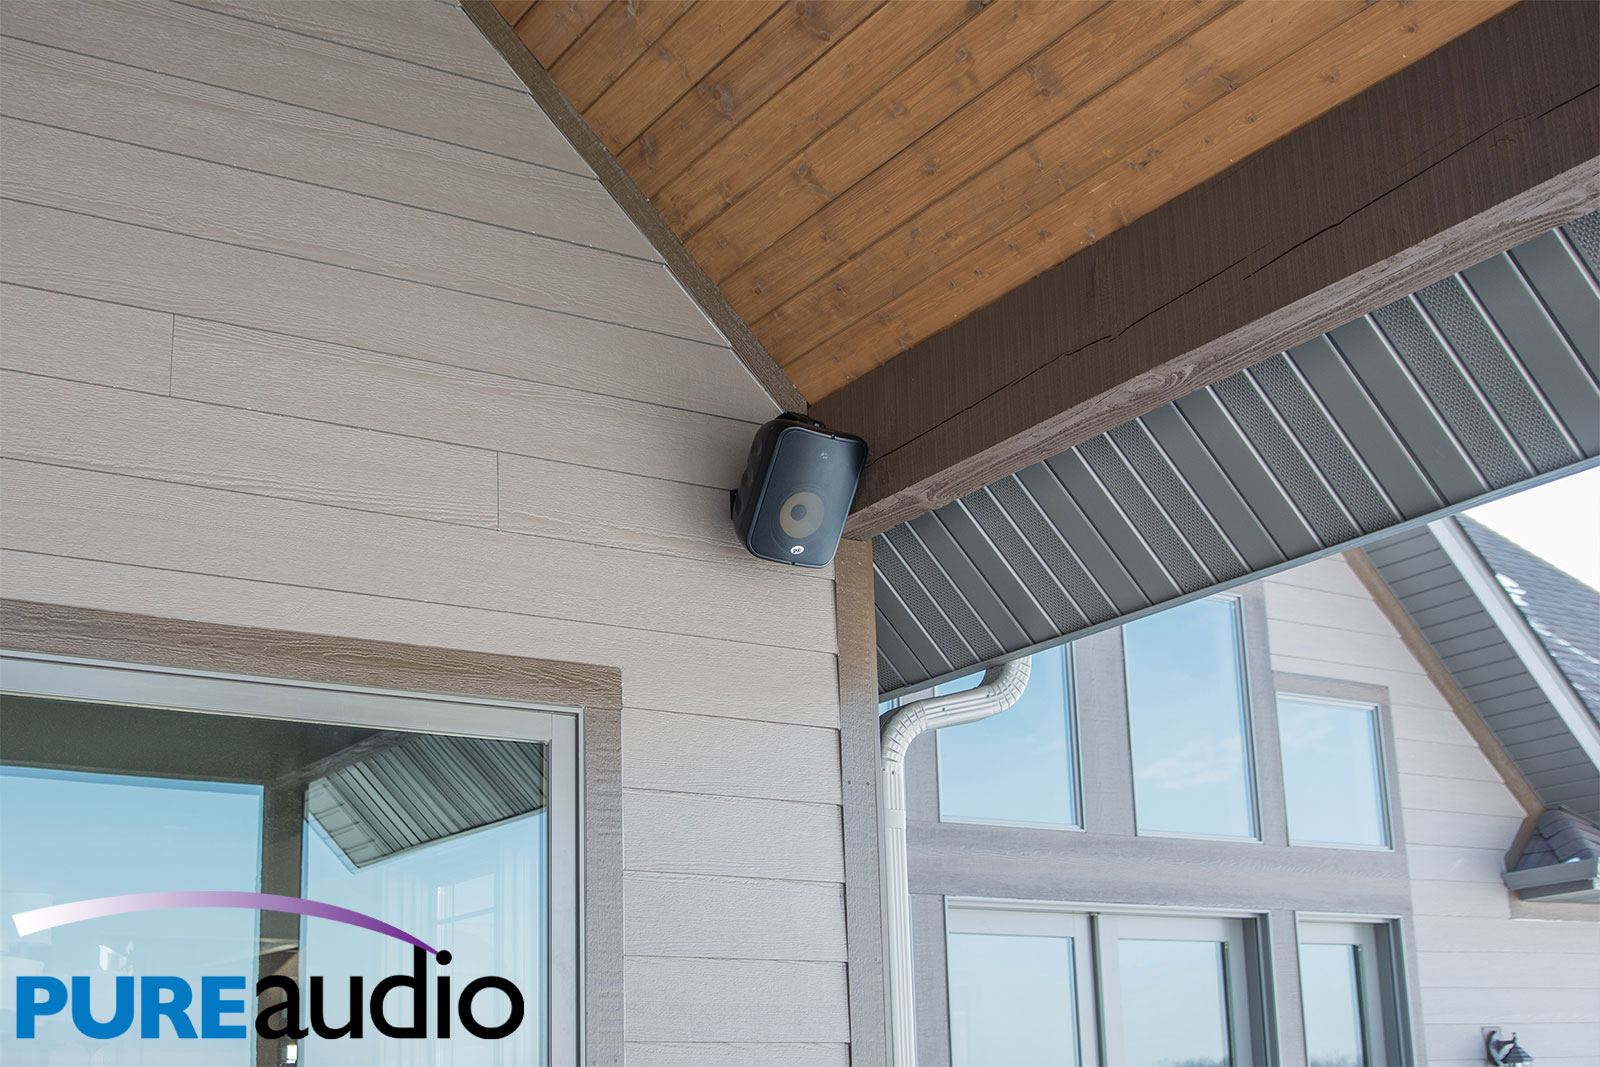 Outdoor Weather Proof Speaker can withstand Rain Snow Sleet and More for Whole Home Audio and Surround Sound Systems Pure Audio Columbia Missouri